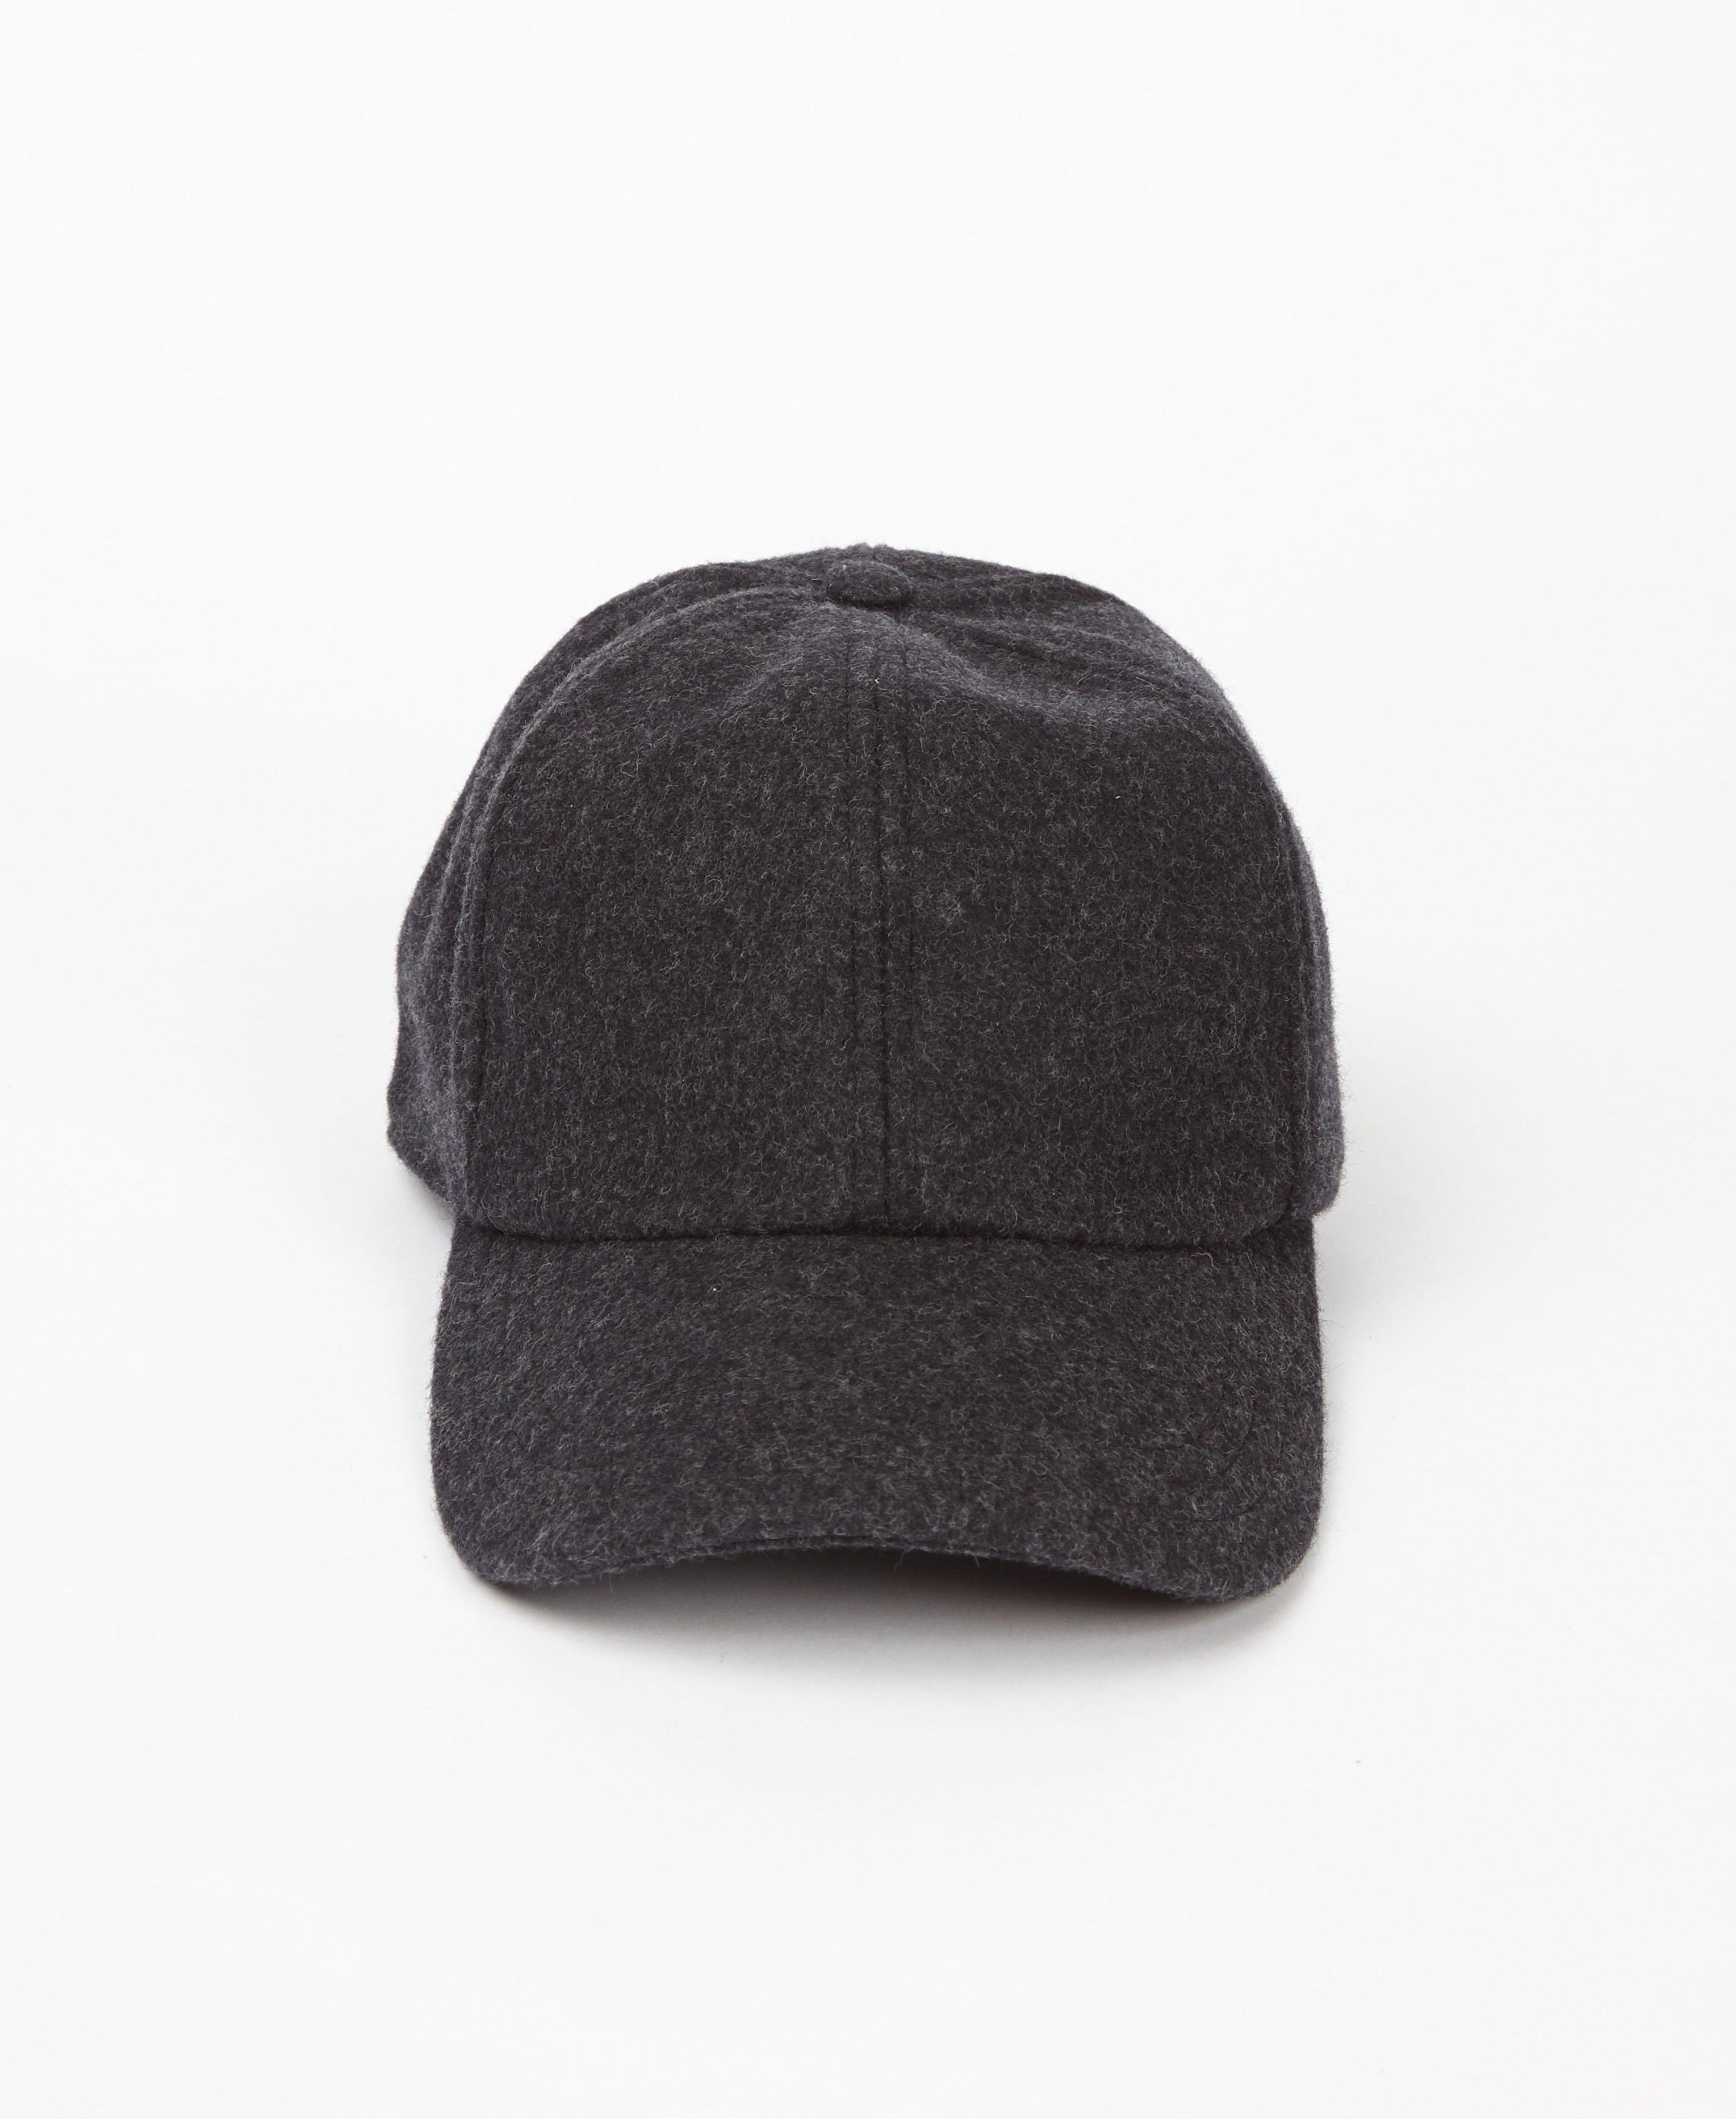 15ef563bc1d Lyst - Sefton Charcoal Wool Cap in Gray for Men